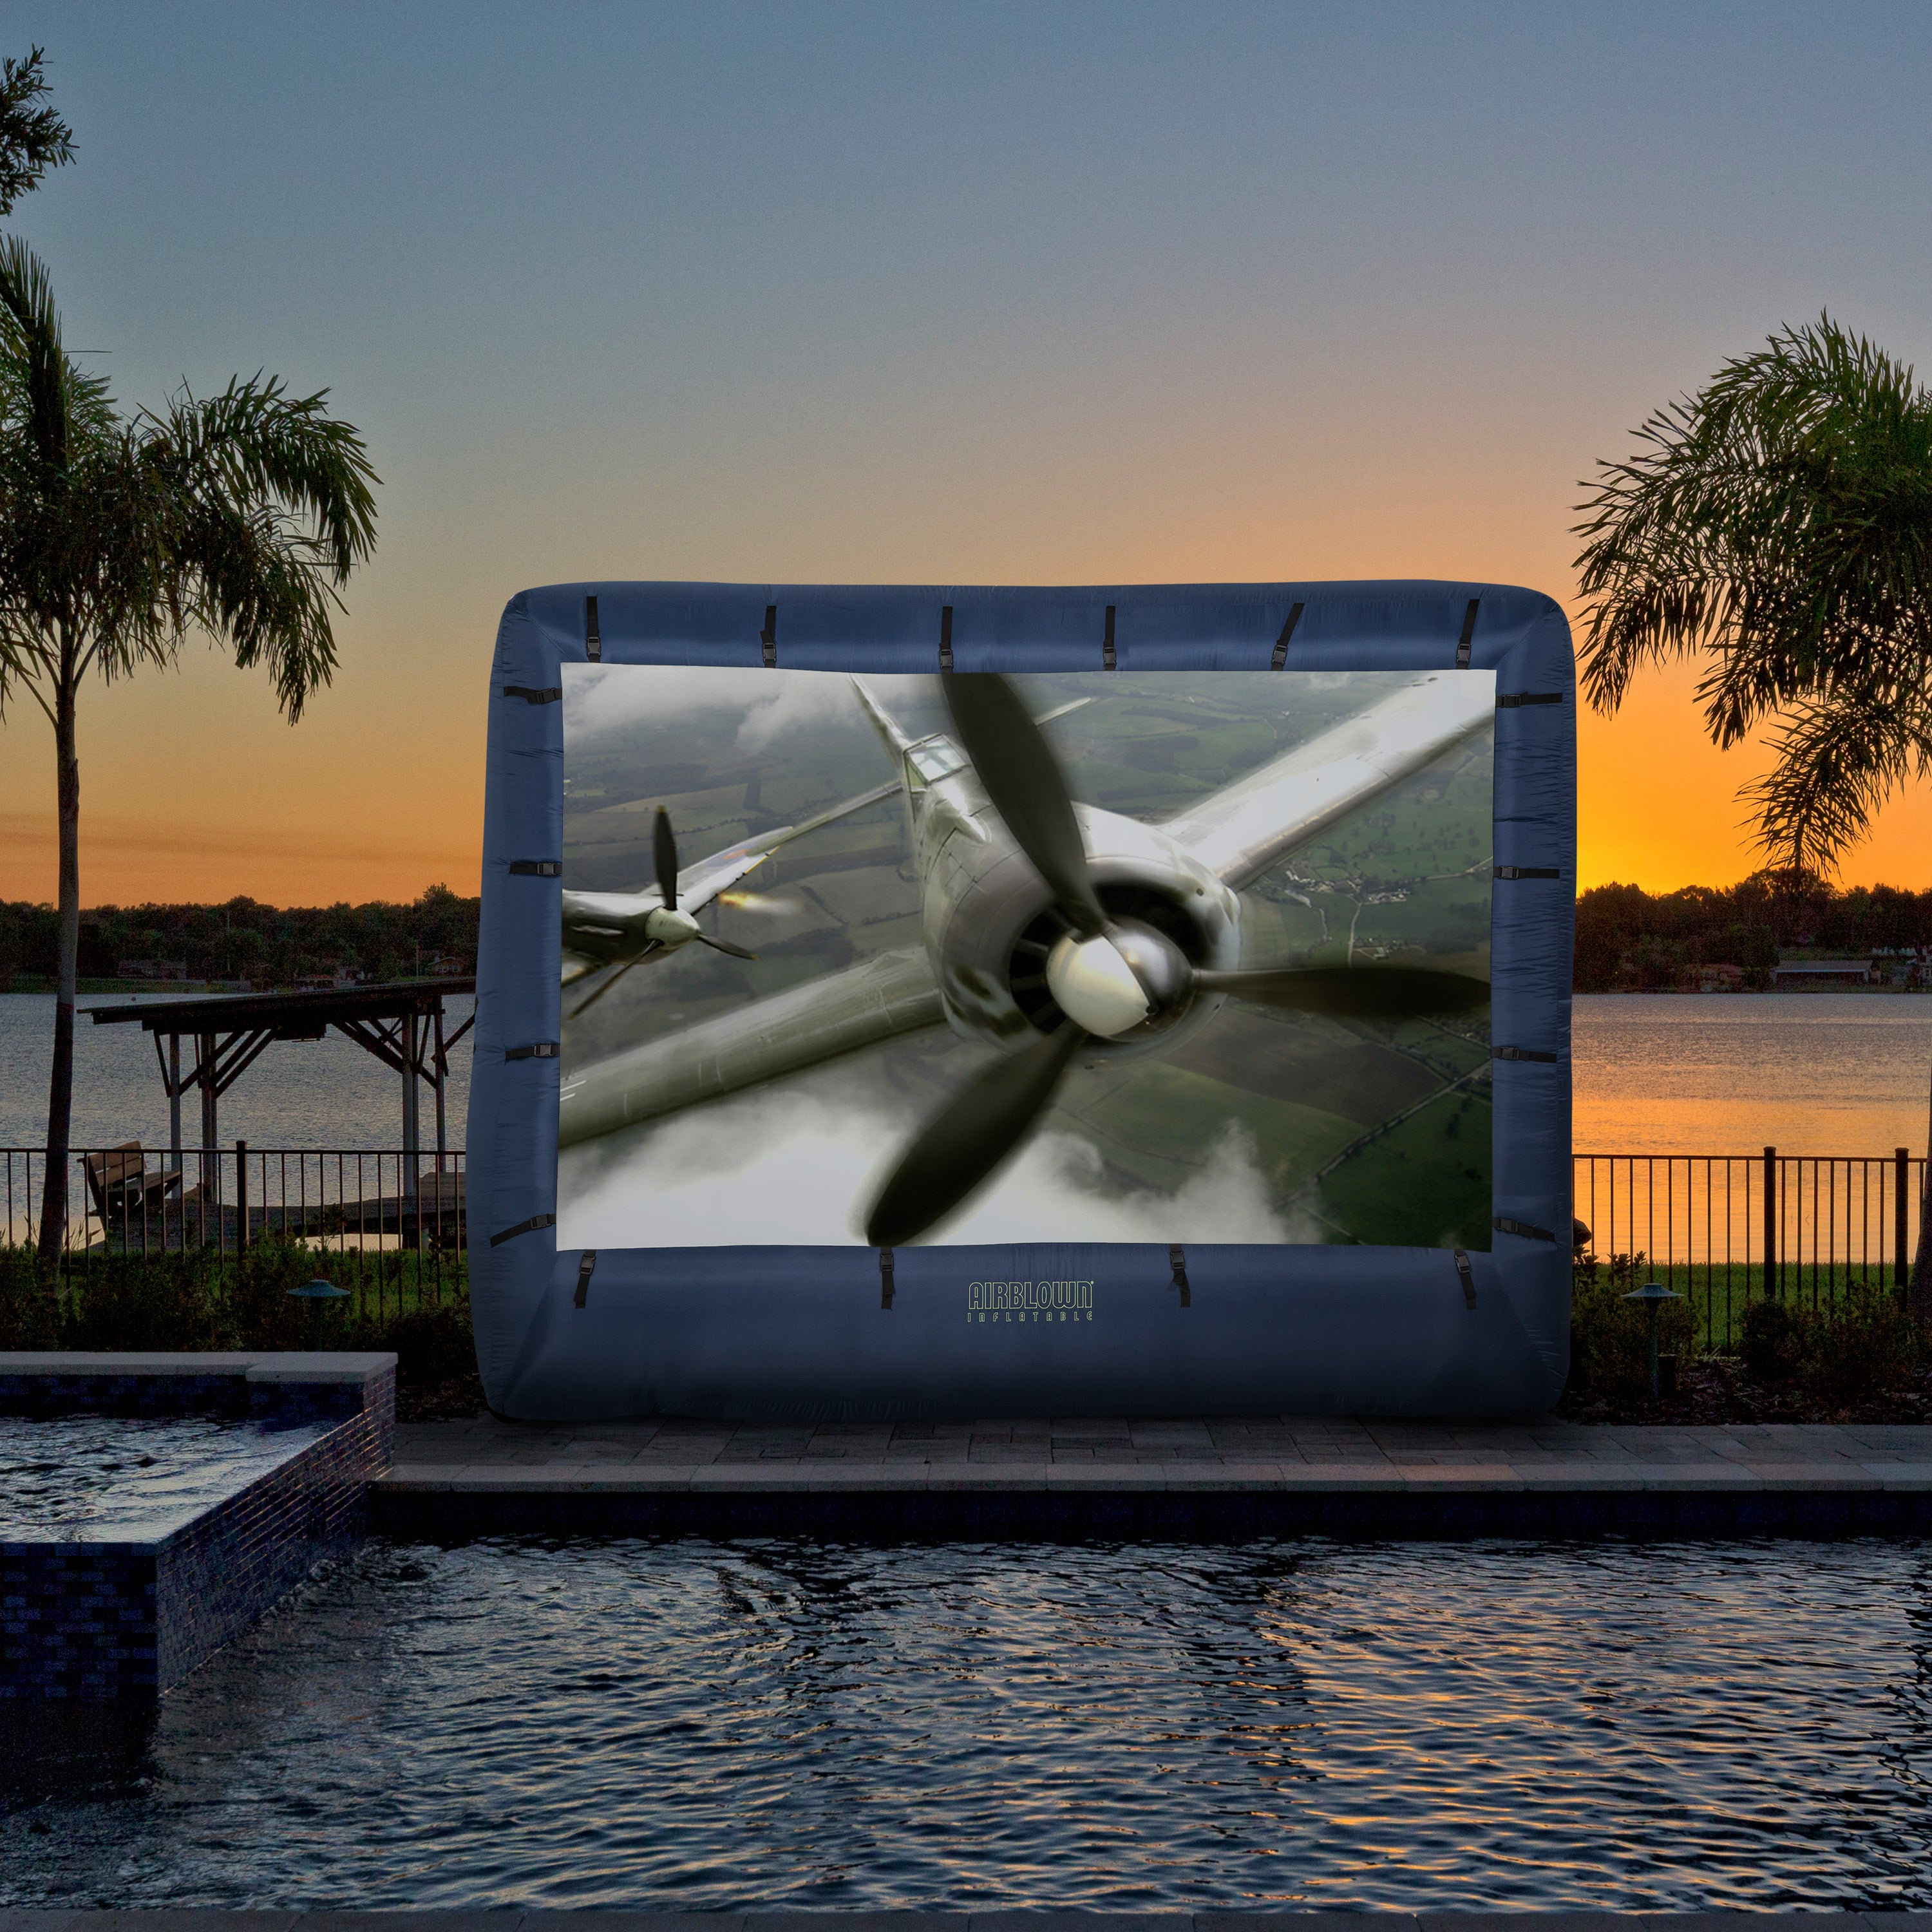 9.5' x 12' Airblown Movie Screen Inflatable